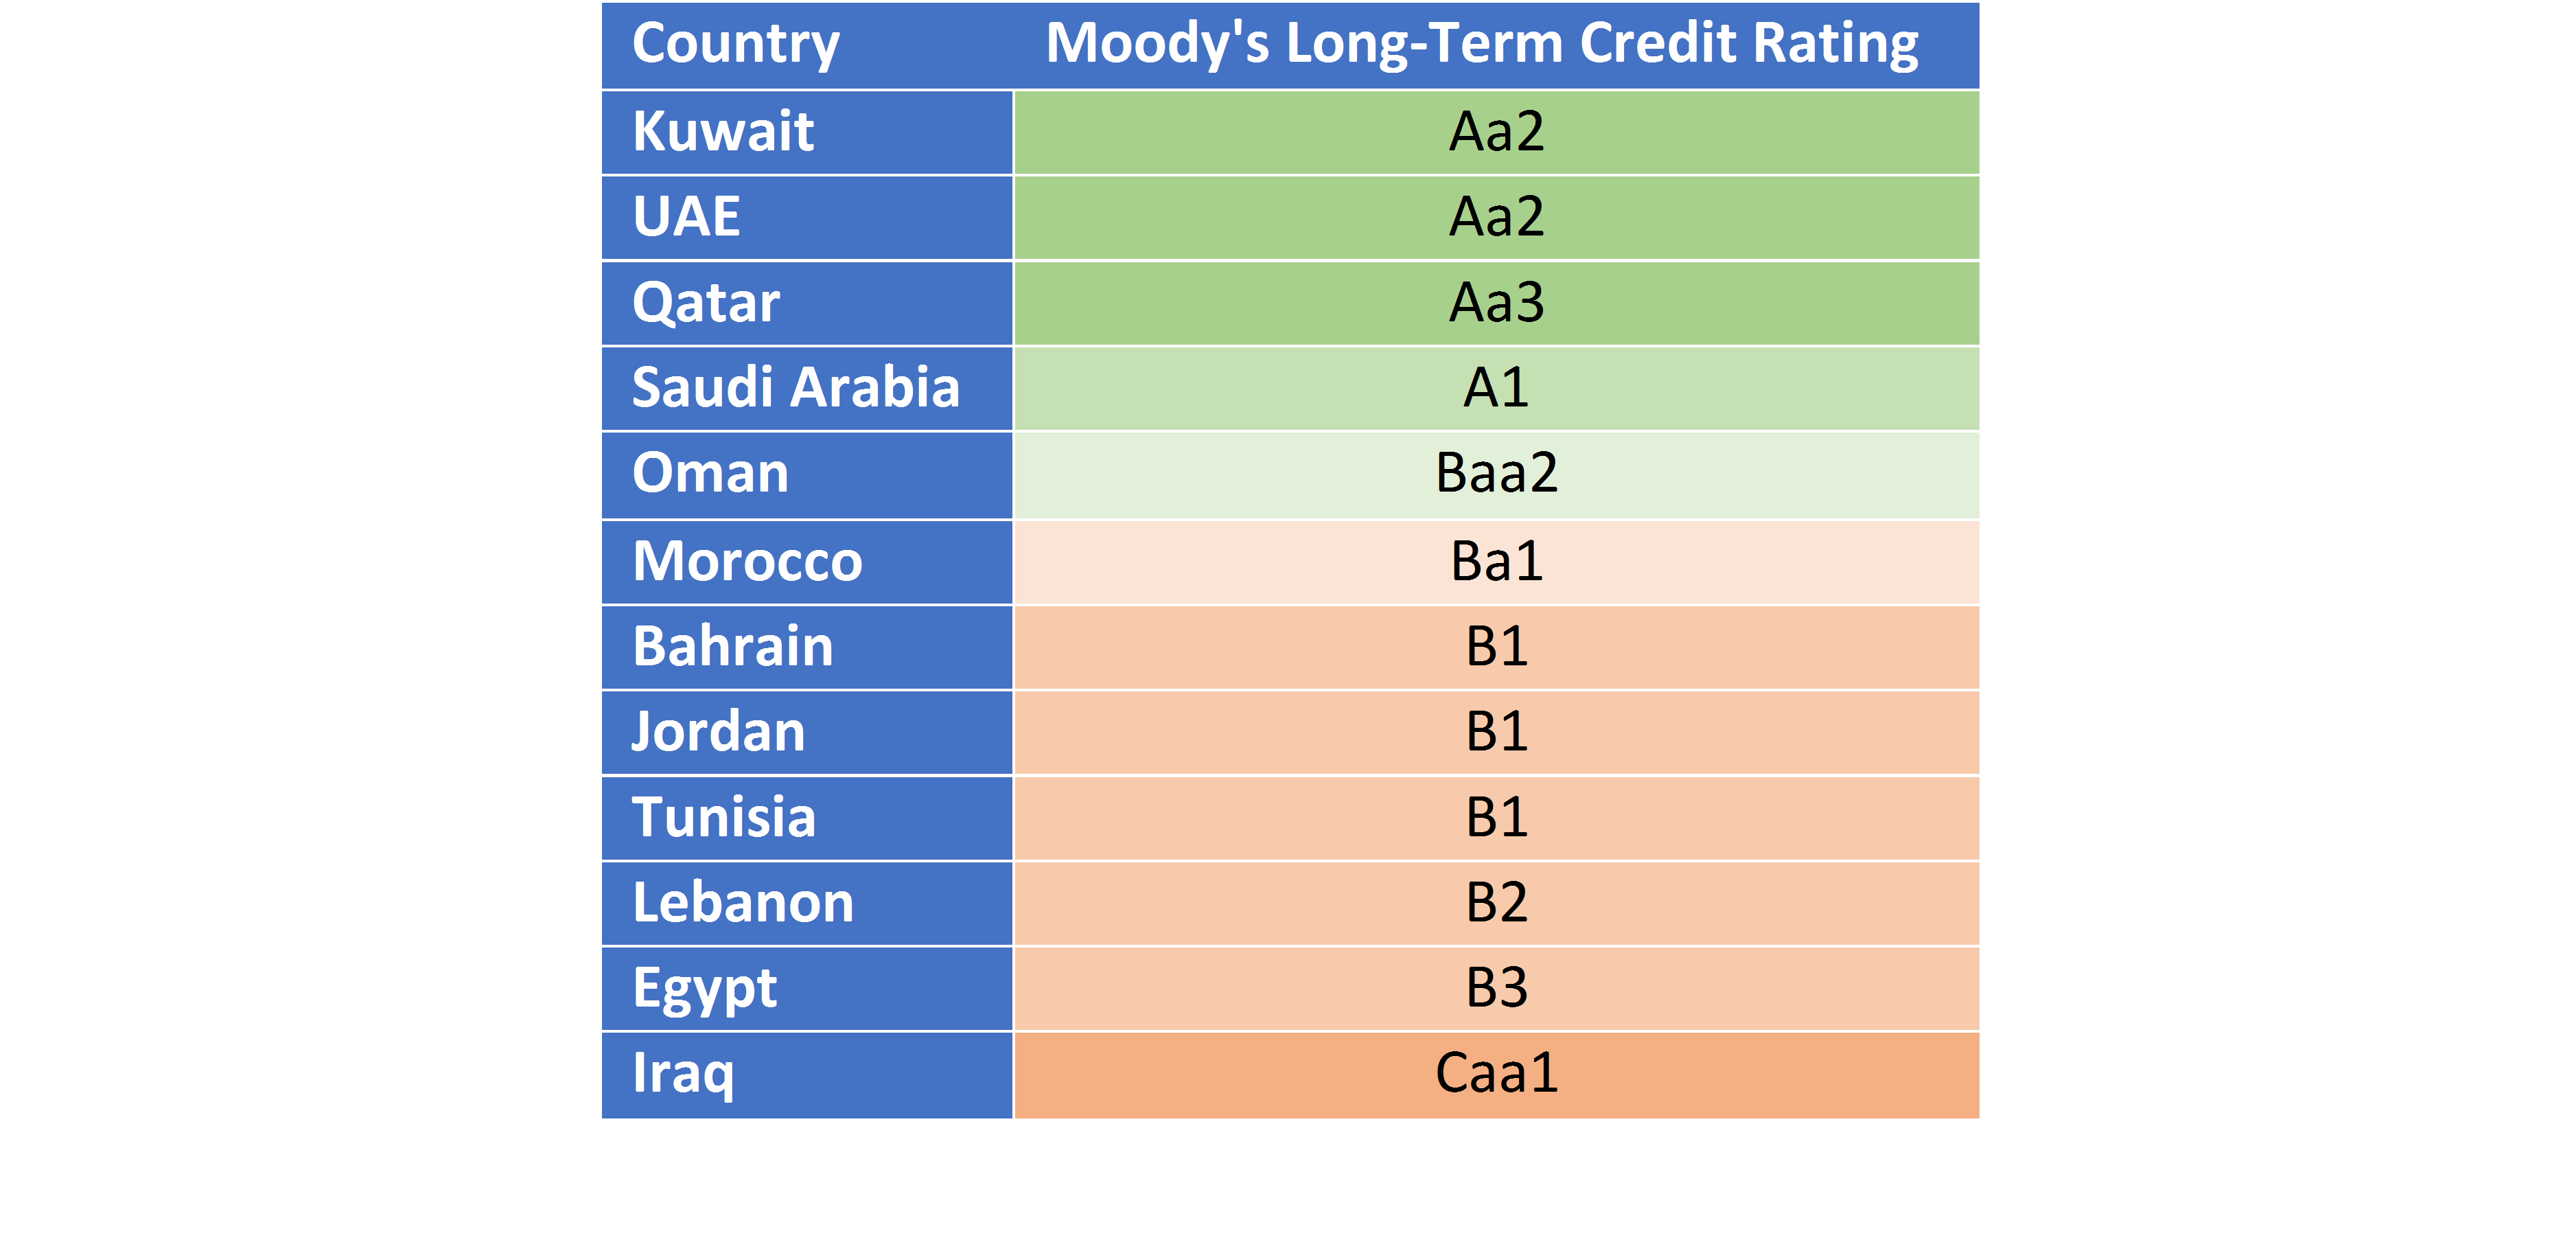 Comparison of Moody's Rating for Arab Countries